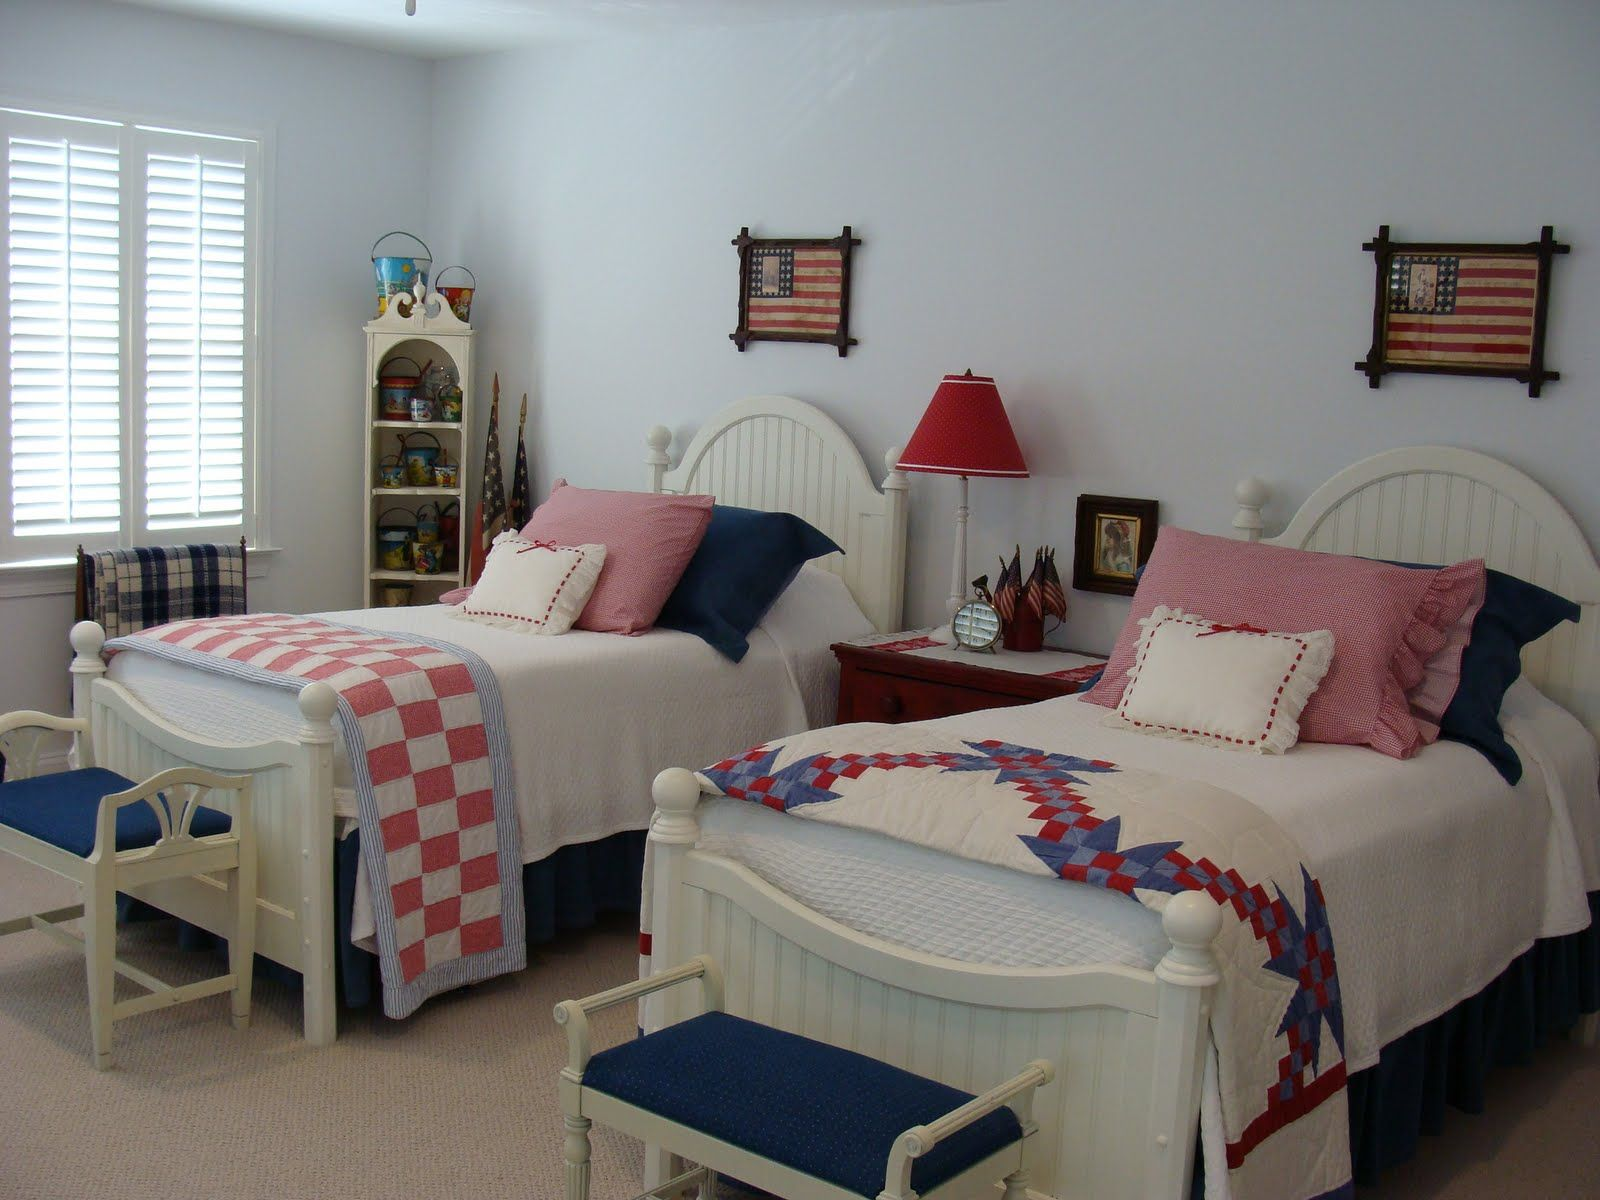 Red White And Blue Bedroom | This Is My Favorite Bedroom. Sheu0027s Done It In  Red, White And Blue With ...